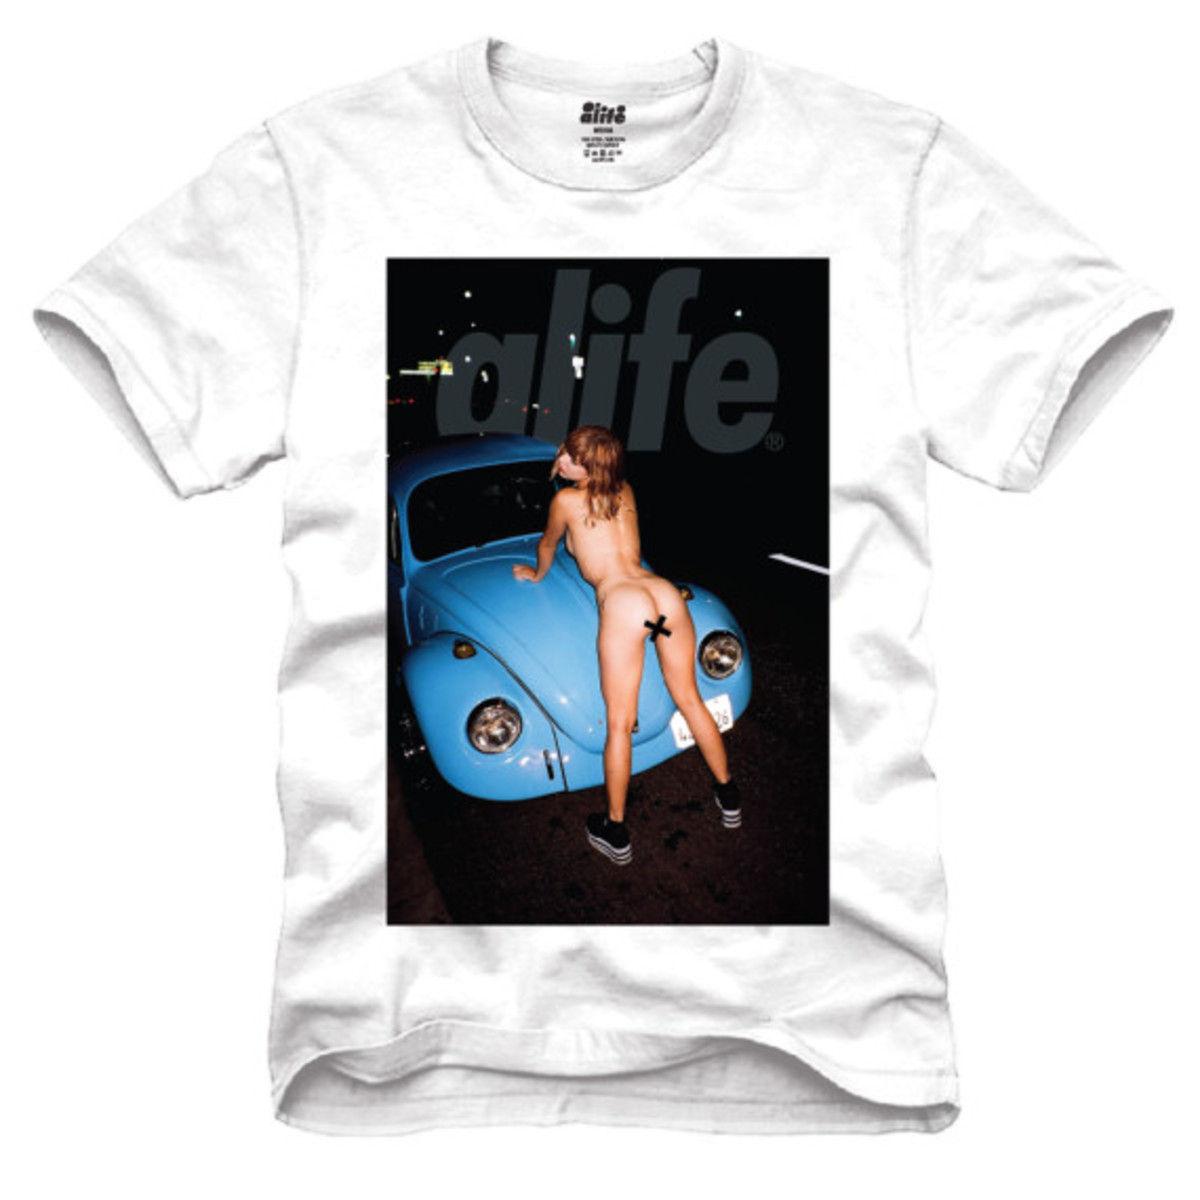 PrettyPuke x ALIFE - Exclusive T-Shirt Collection - 1